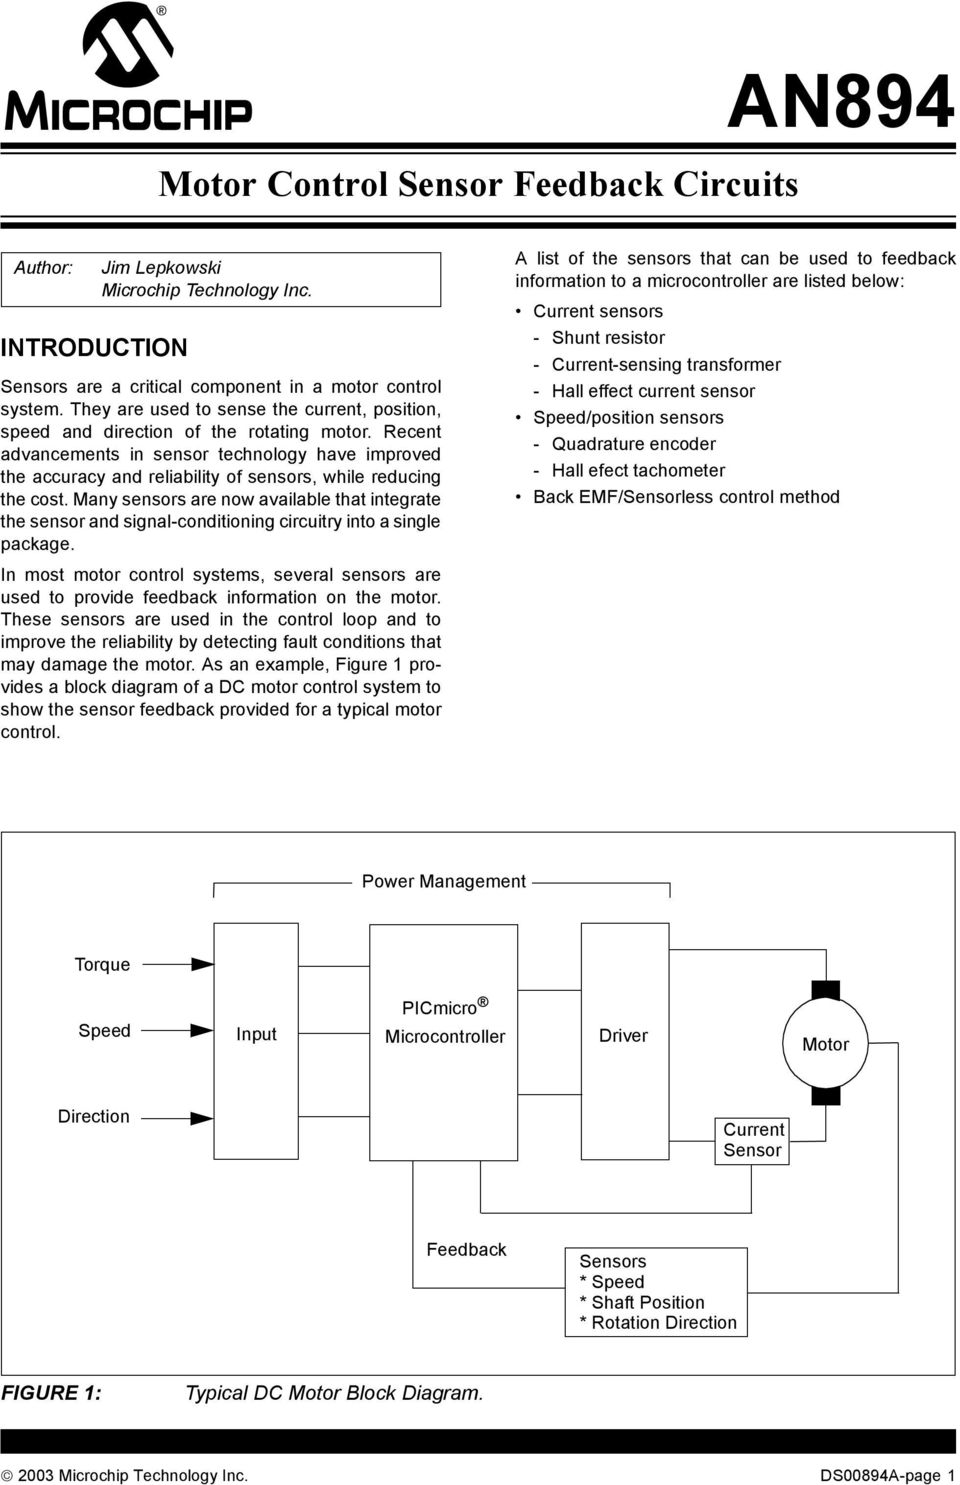 motor control sensor feedback circuits power management picmicrorecent advancements in sensor technology have improved the accuracy and reliability of sensors, while reducing